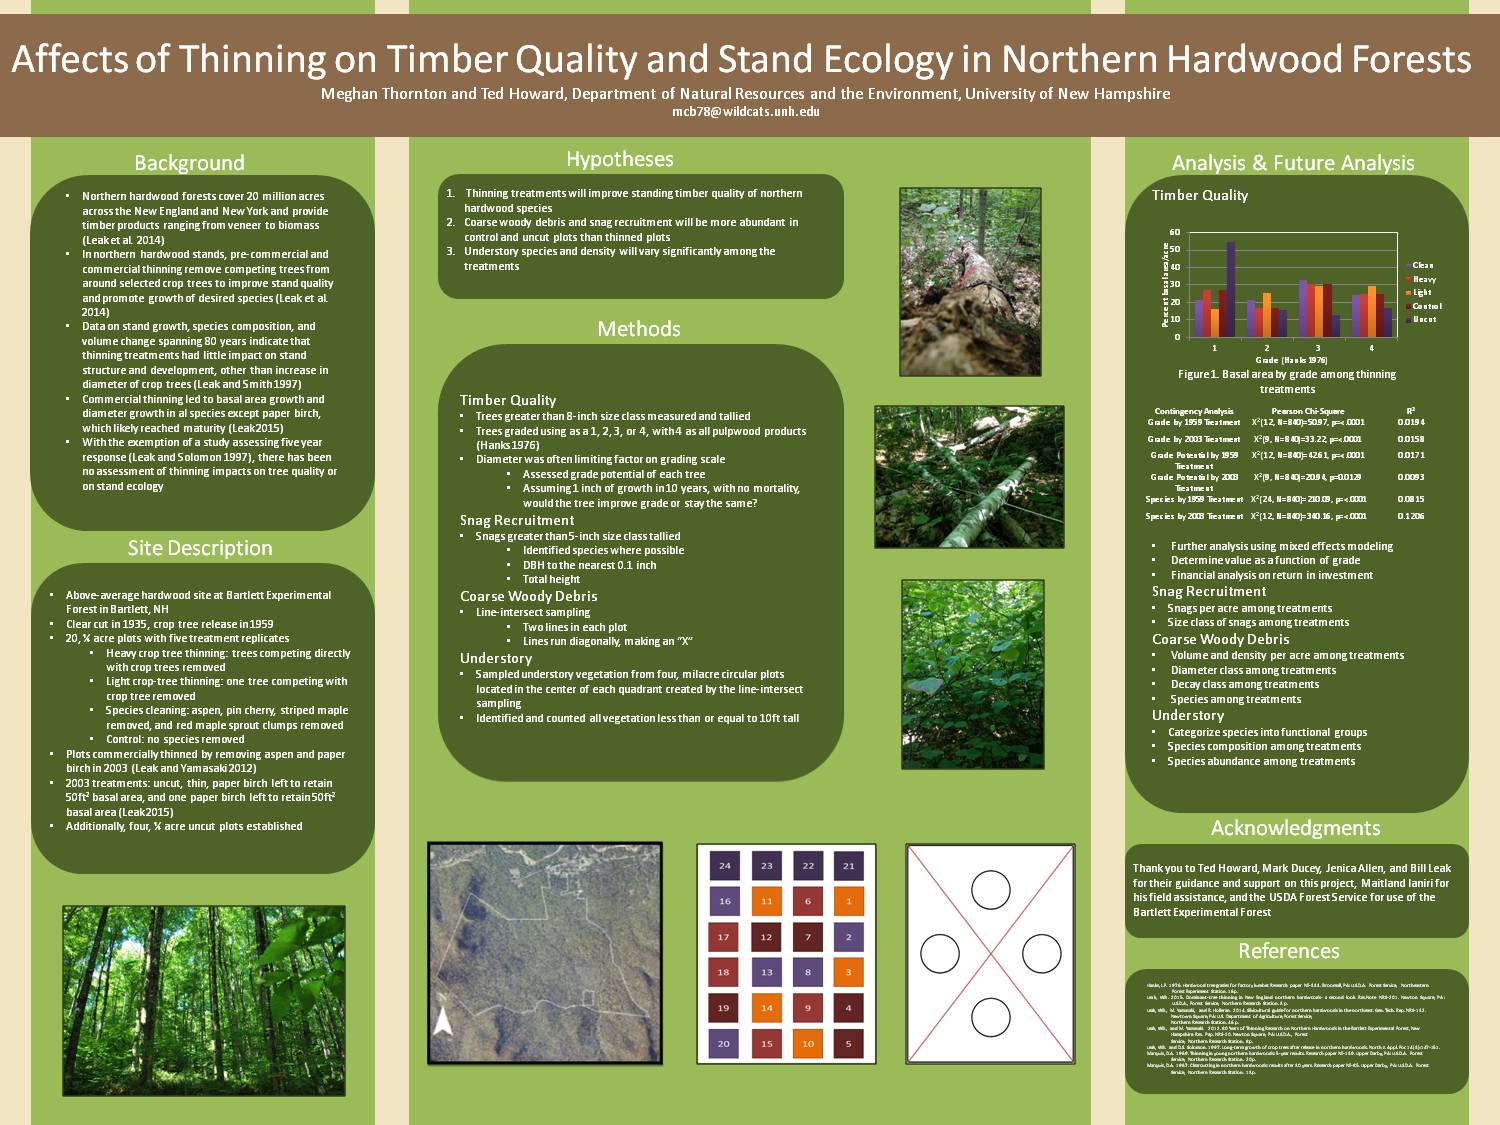 Affects Of Thinning Of Timber Quality And Stand Ecology In Northern Hardwood Forests by mcb78